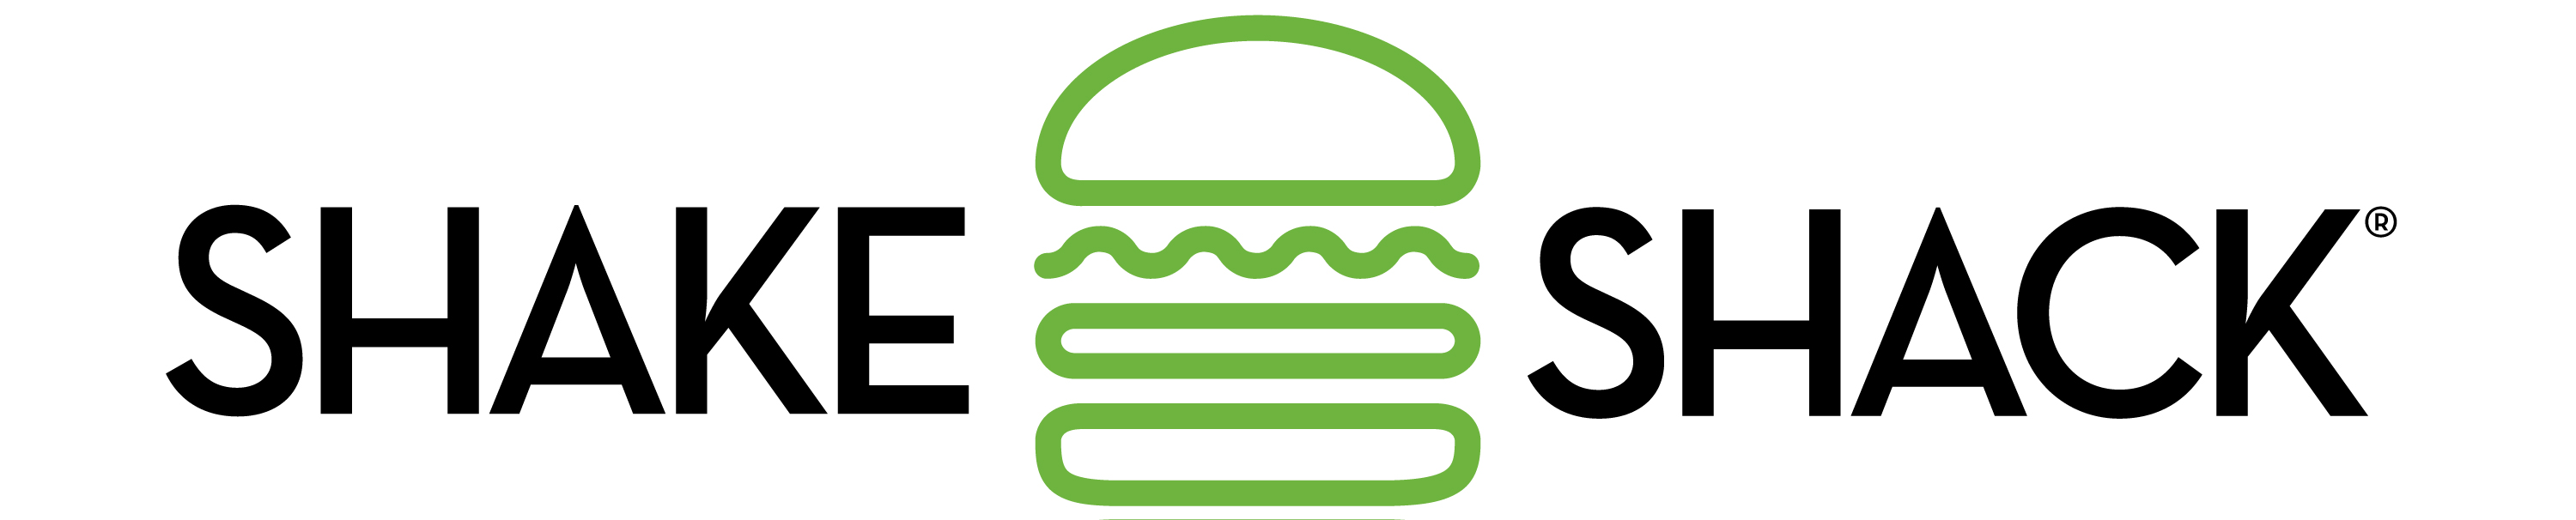 Shake Shack Logo food and restaurant news and events - shake shack to open in